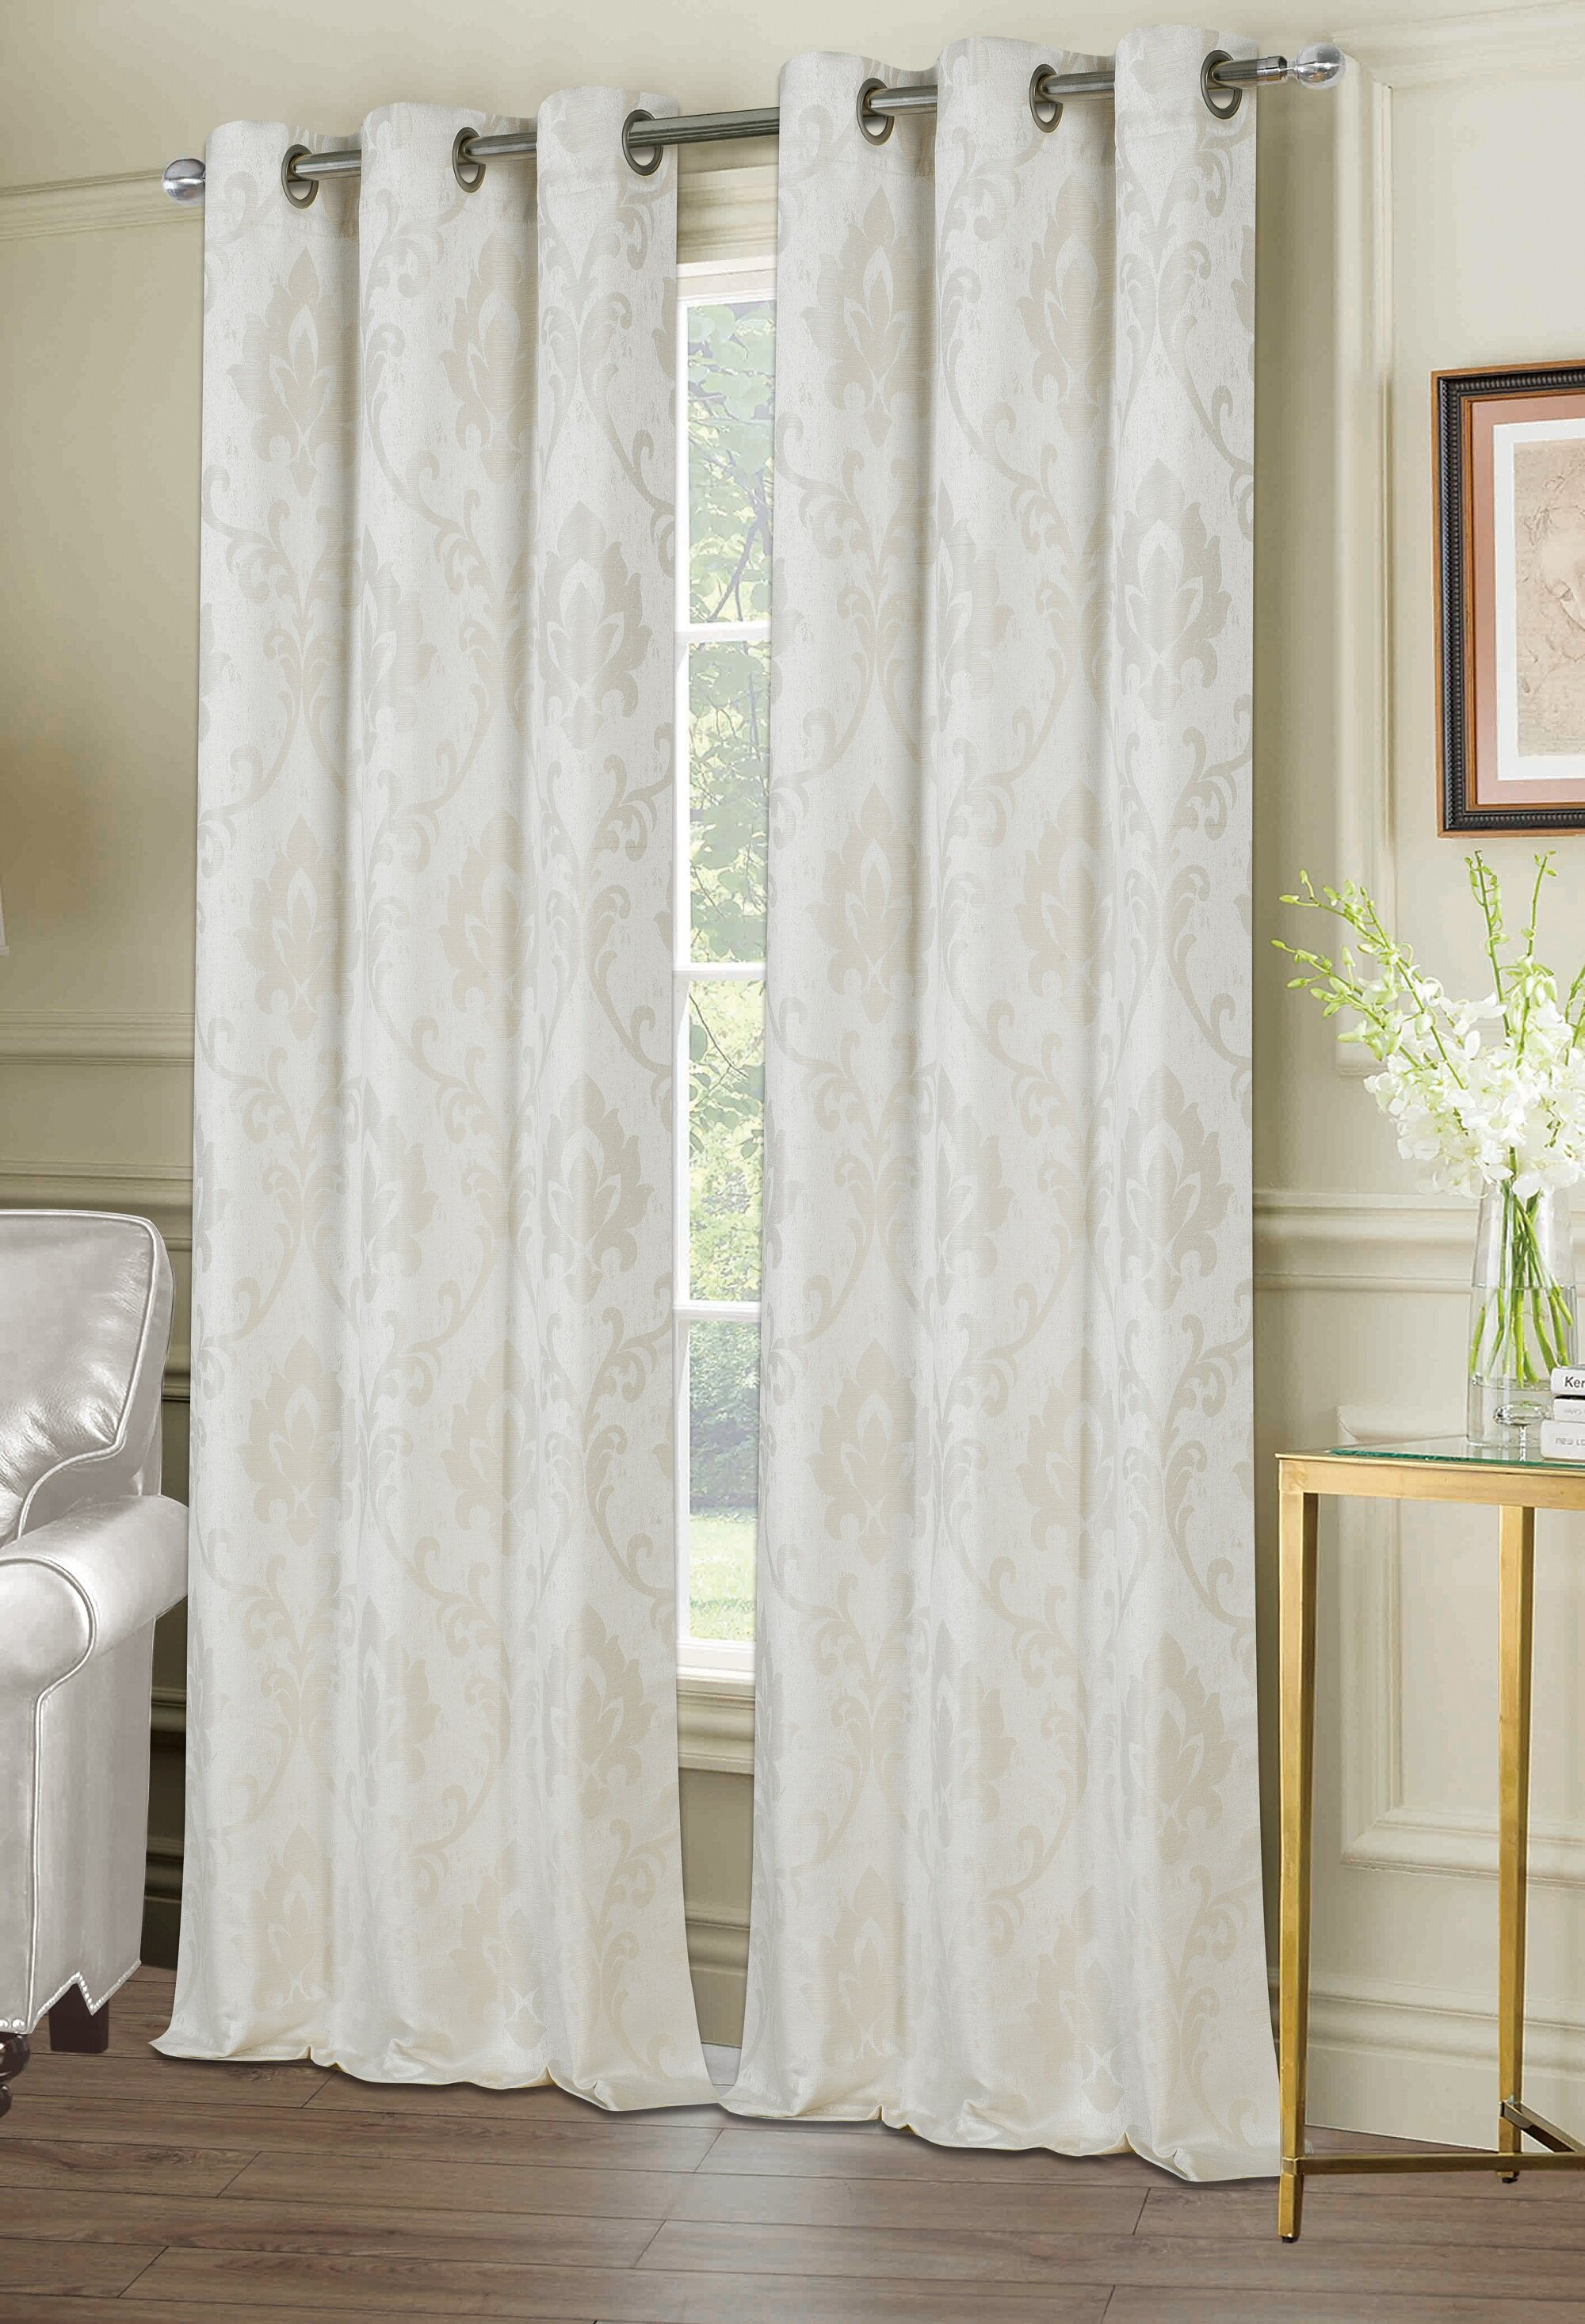 Maryville Window Damask Room Darkening Grommet Curtain Panels With Regard To Andorra Watercolor Floral Textured Sheer Single Curtain Panels (Image 6 of 20)